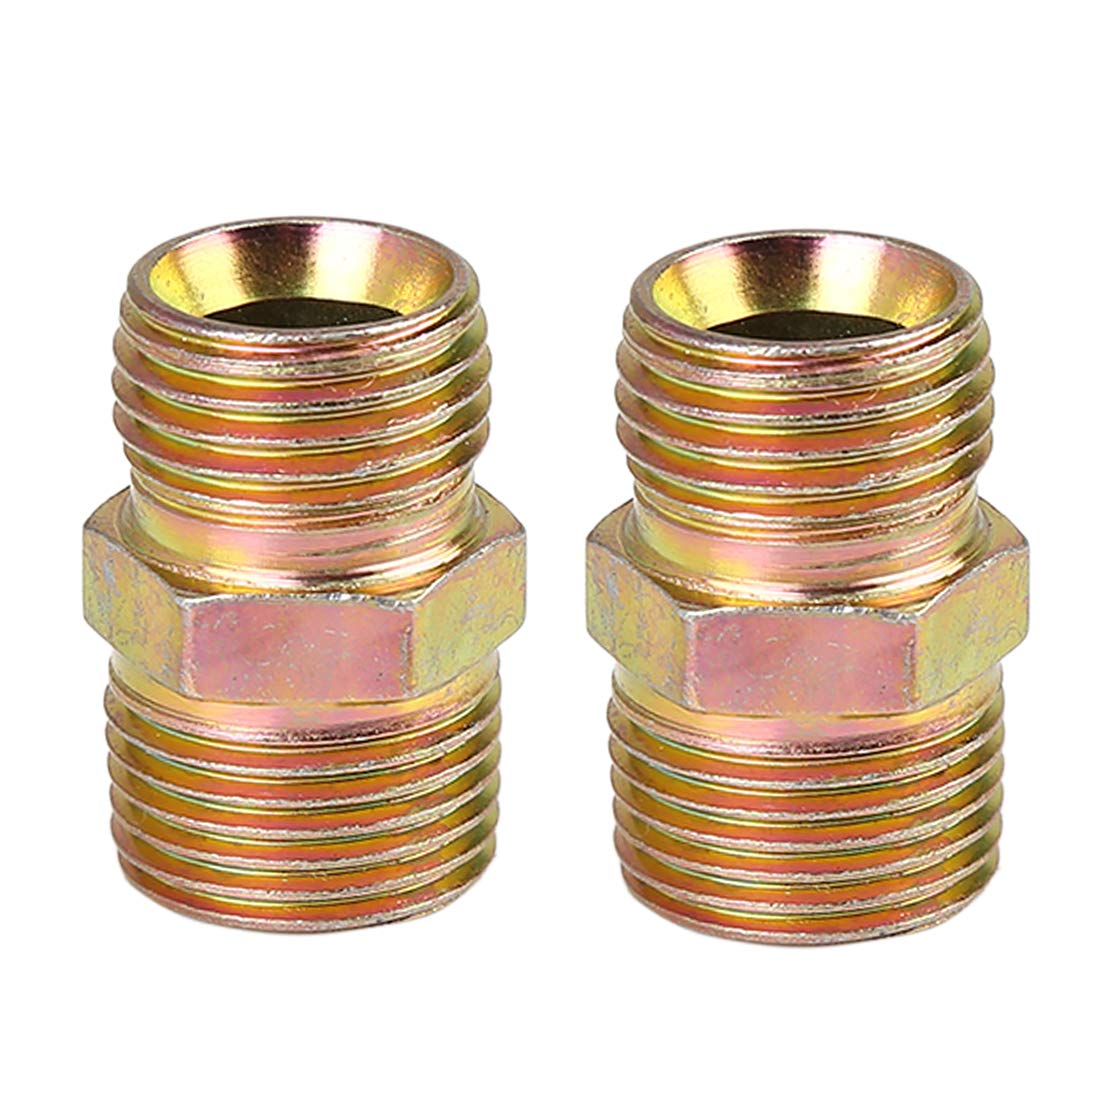 X AUTOHAUX 2pcs 1//4 NPT to M16 x 1.5mm Male Straight Air Hose Fitting Connector Adapter